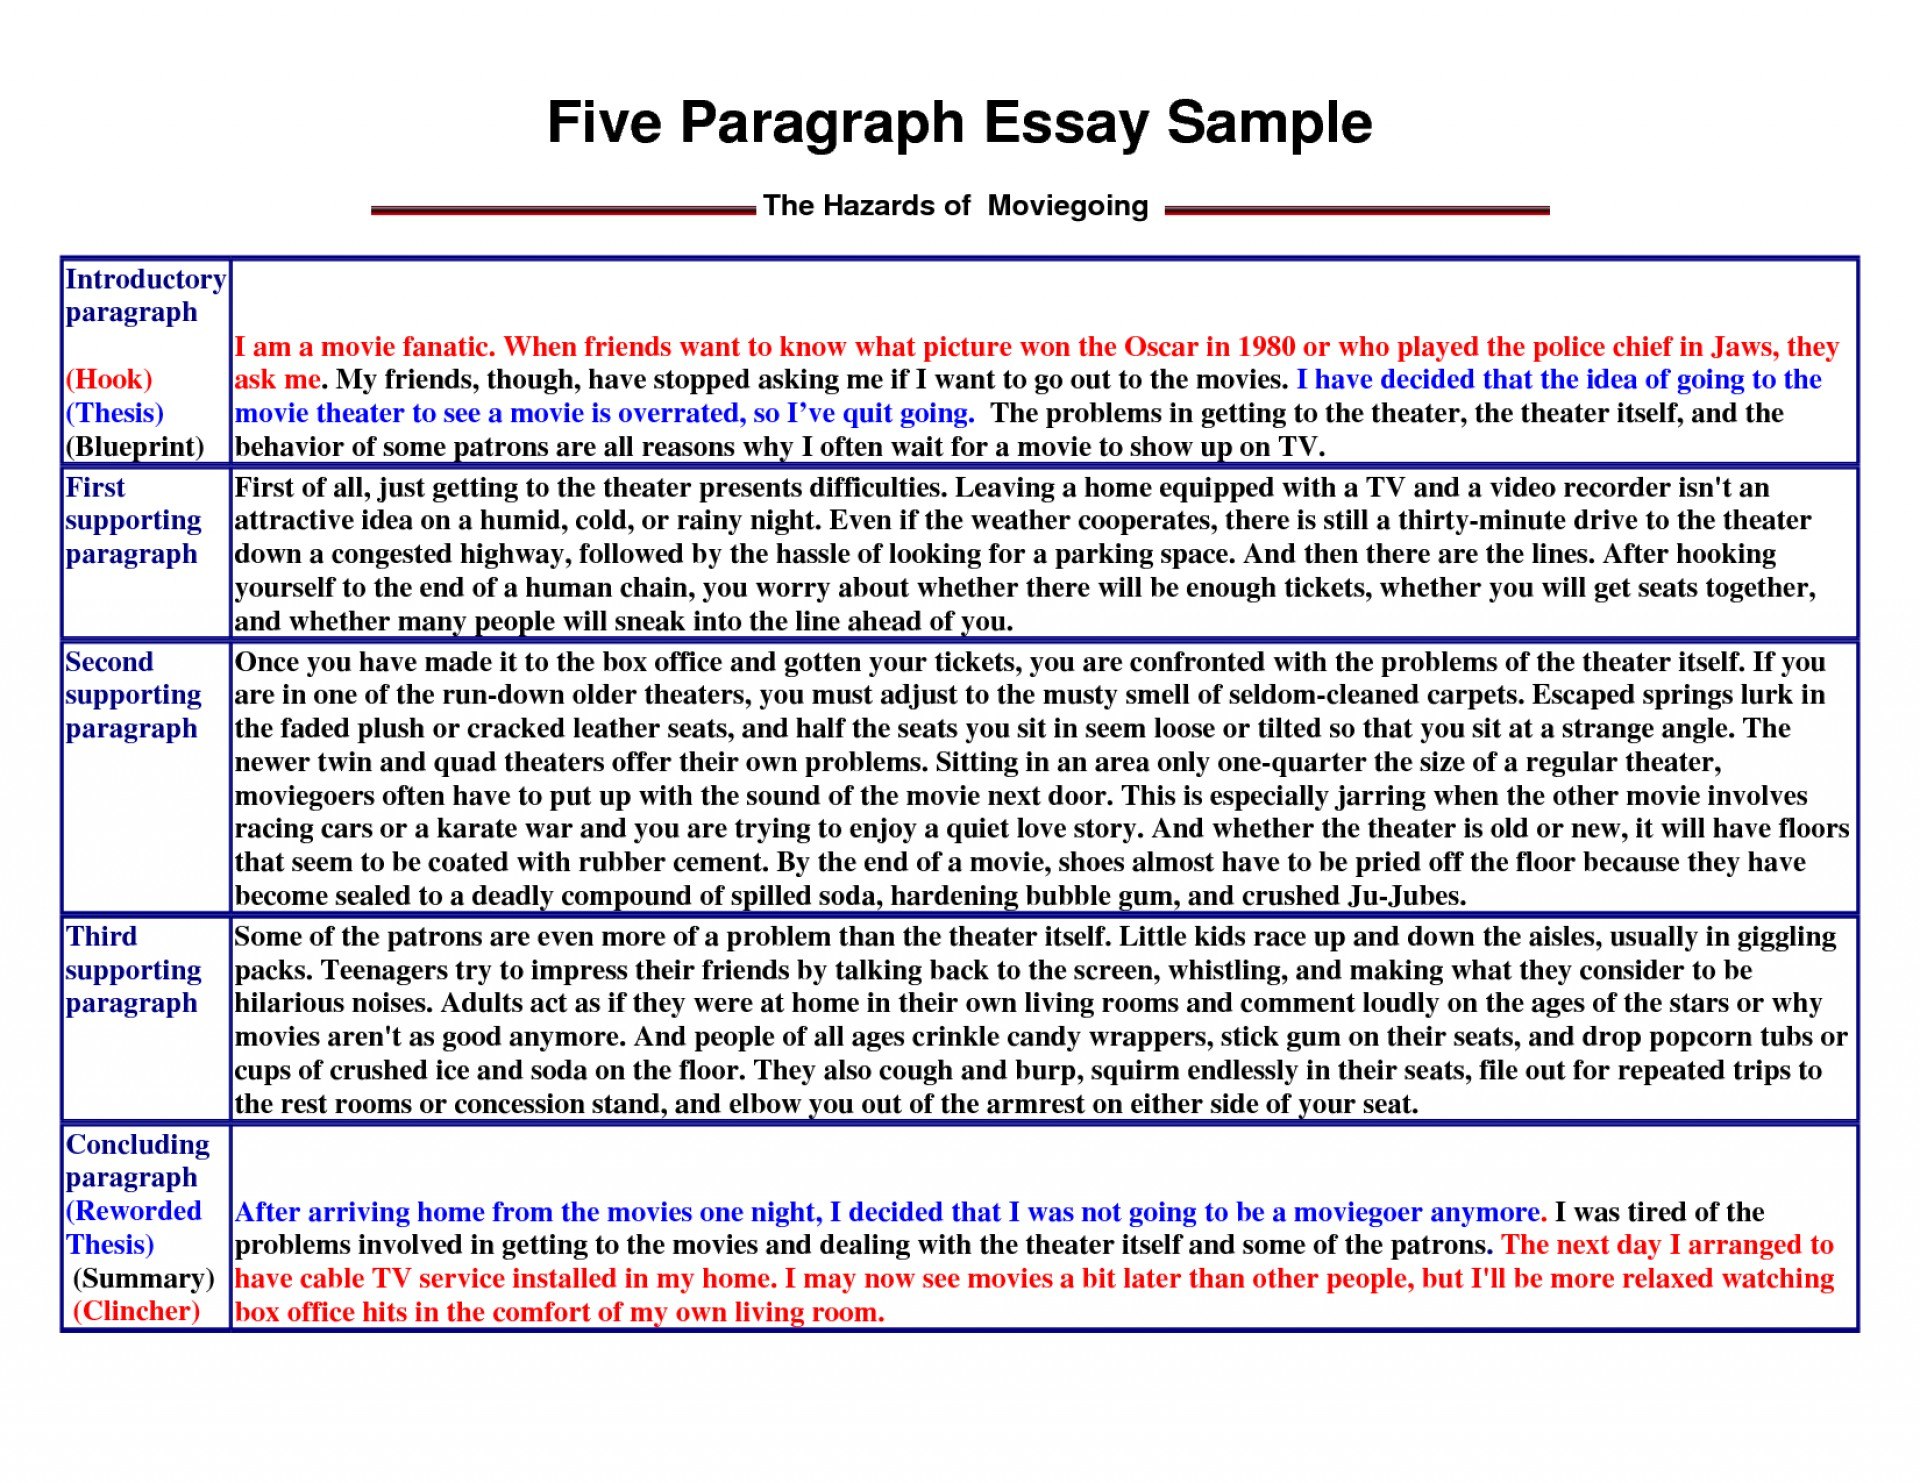 004 Writing Paragraph Essay Stunning A 5 Sample Pdf Graphic Organizer Outline Of Template 1920